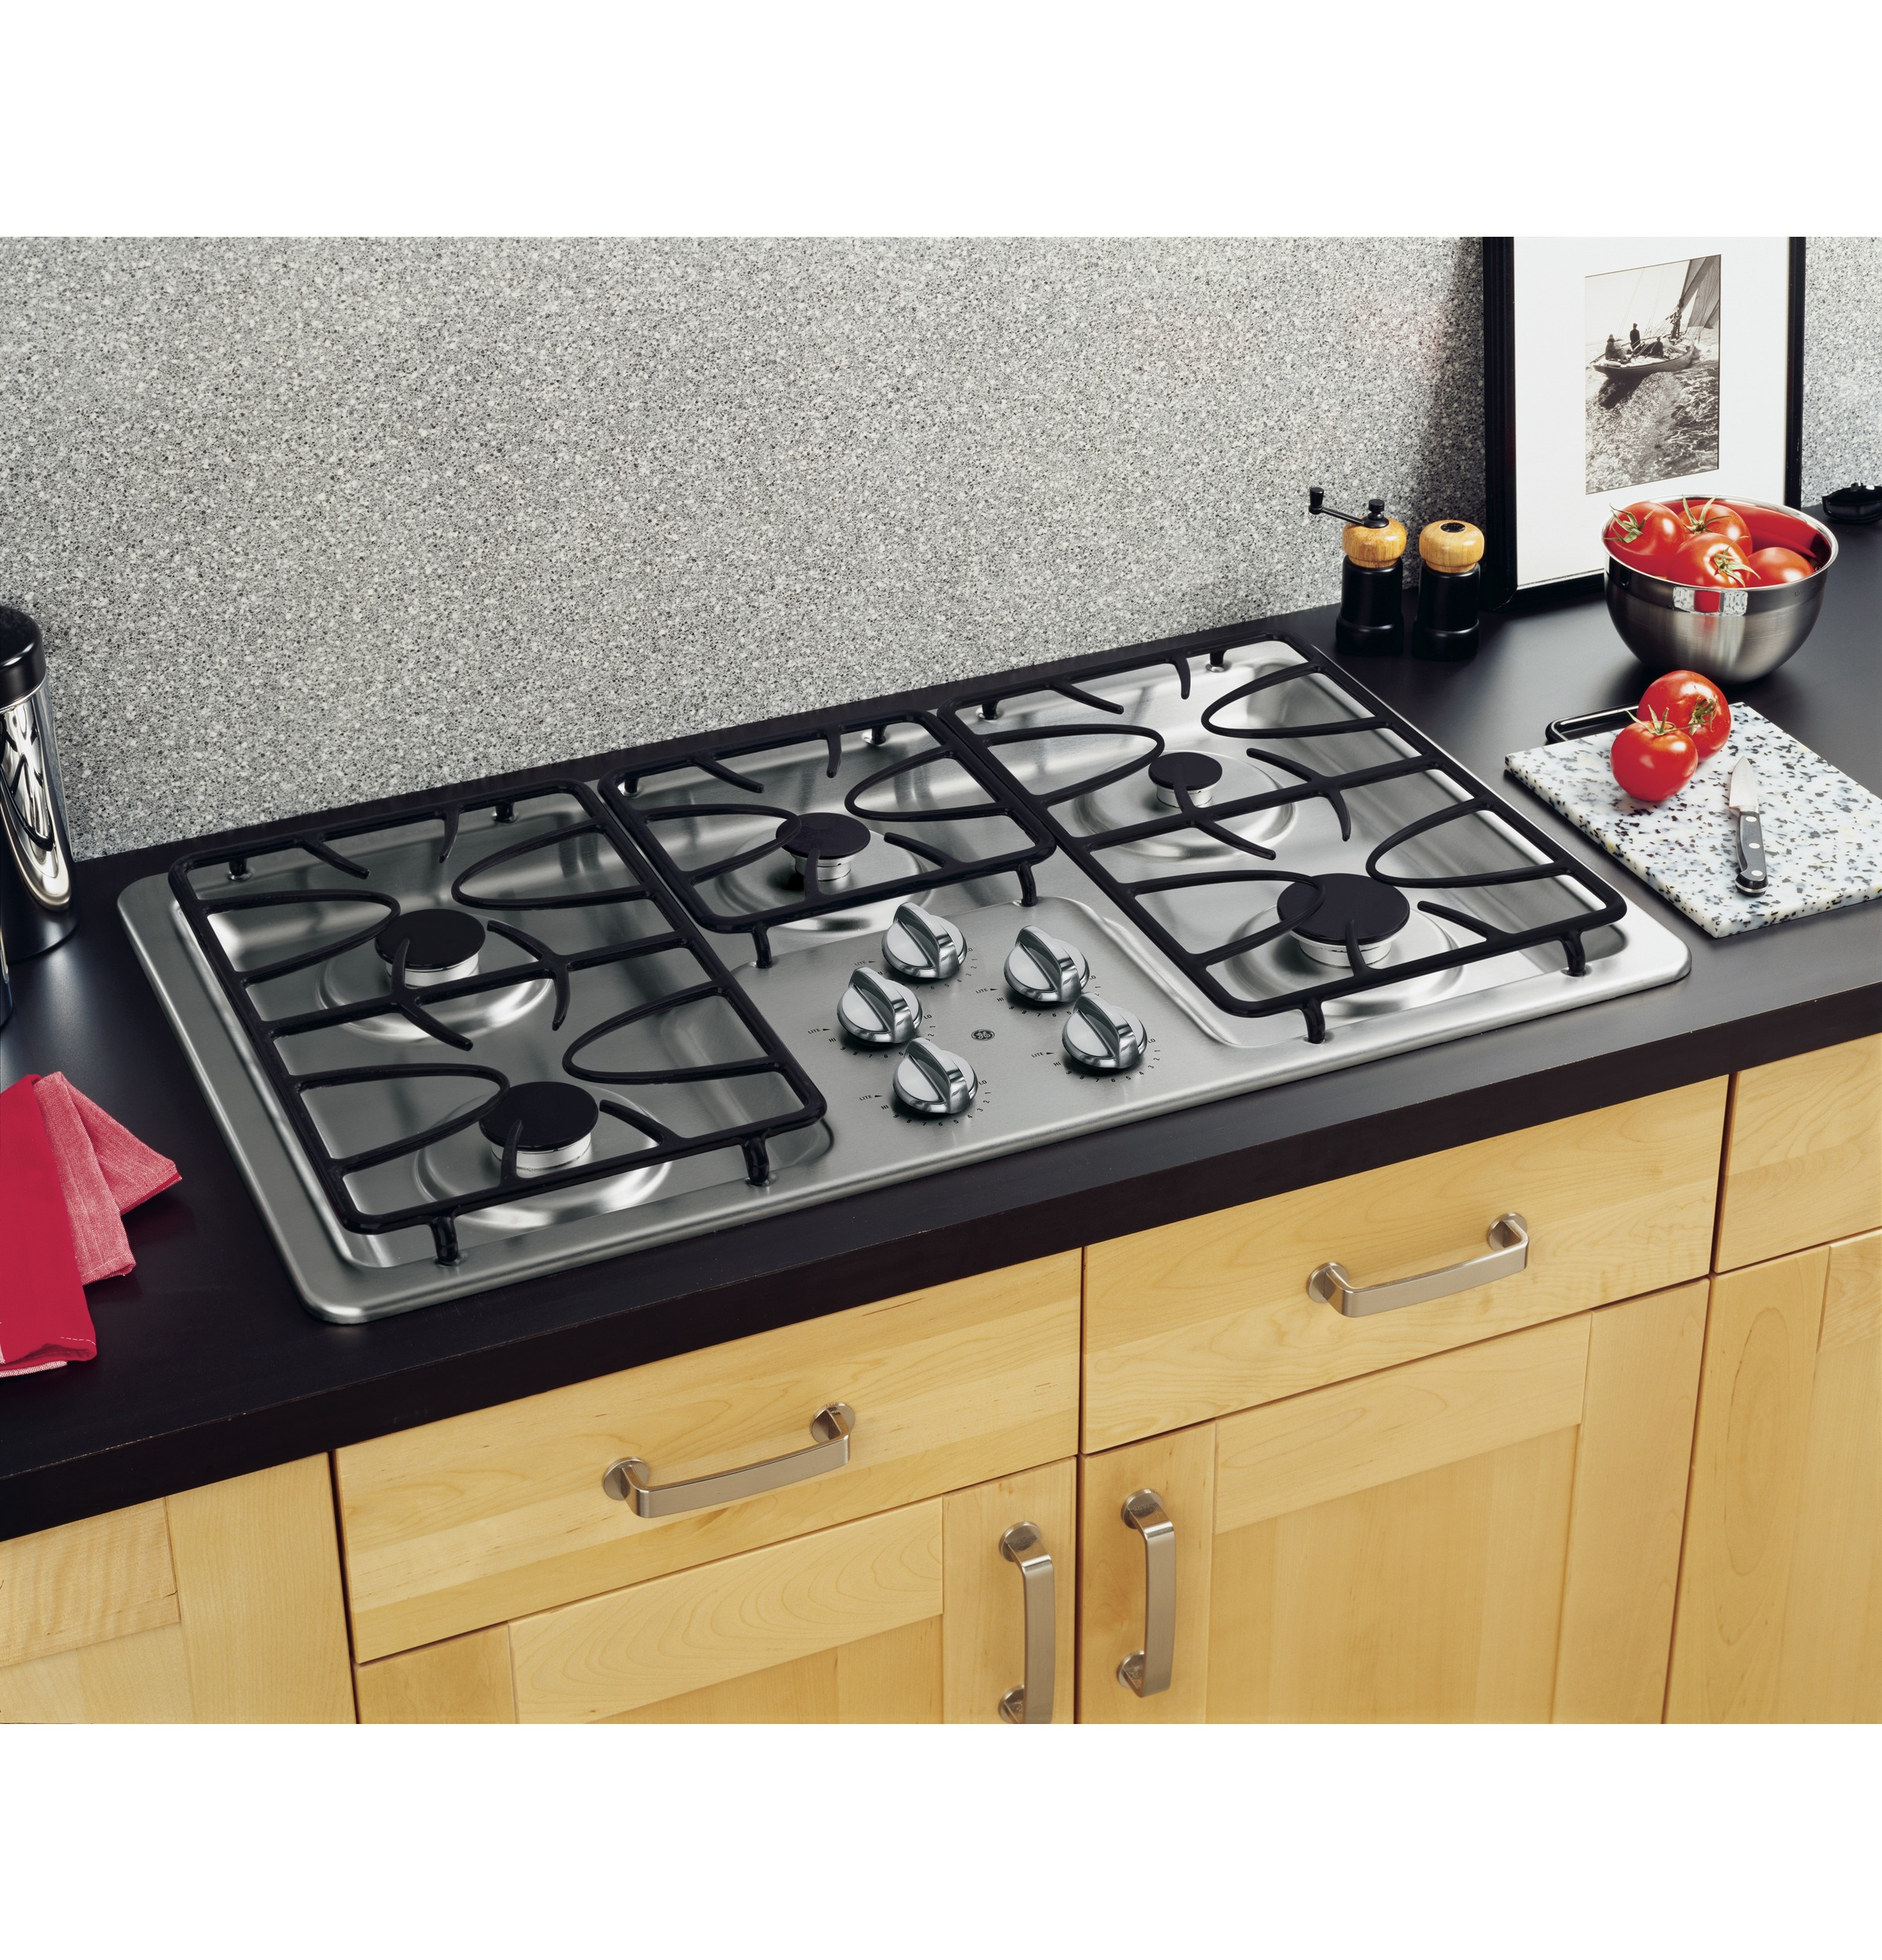 GER 36 Built In Gas Cooktop